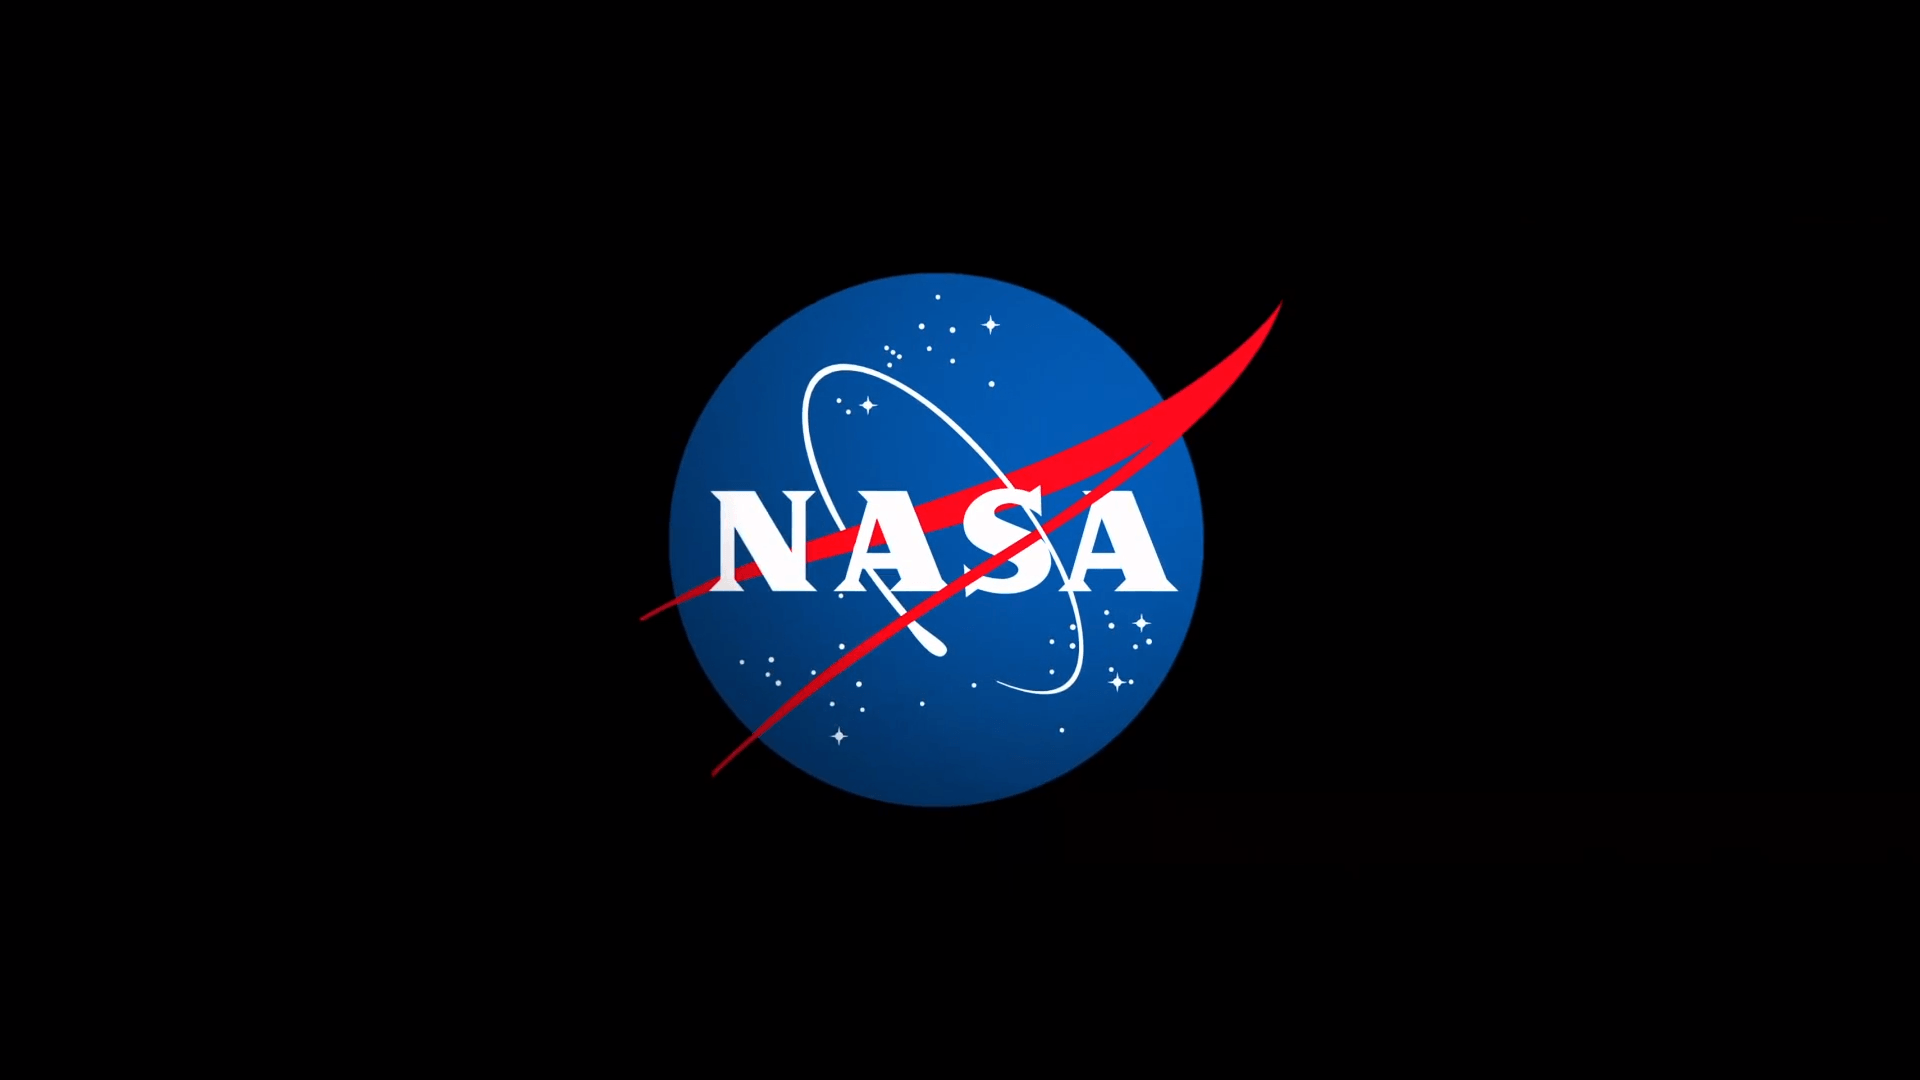 Nasa Meatball Logo, iPhone Wallpaper, Facebook Cover, Twitter